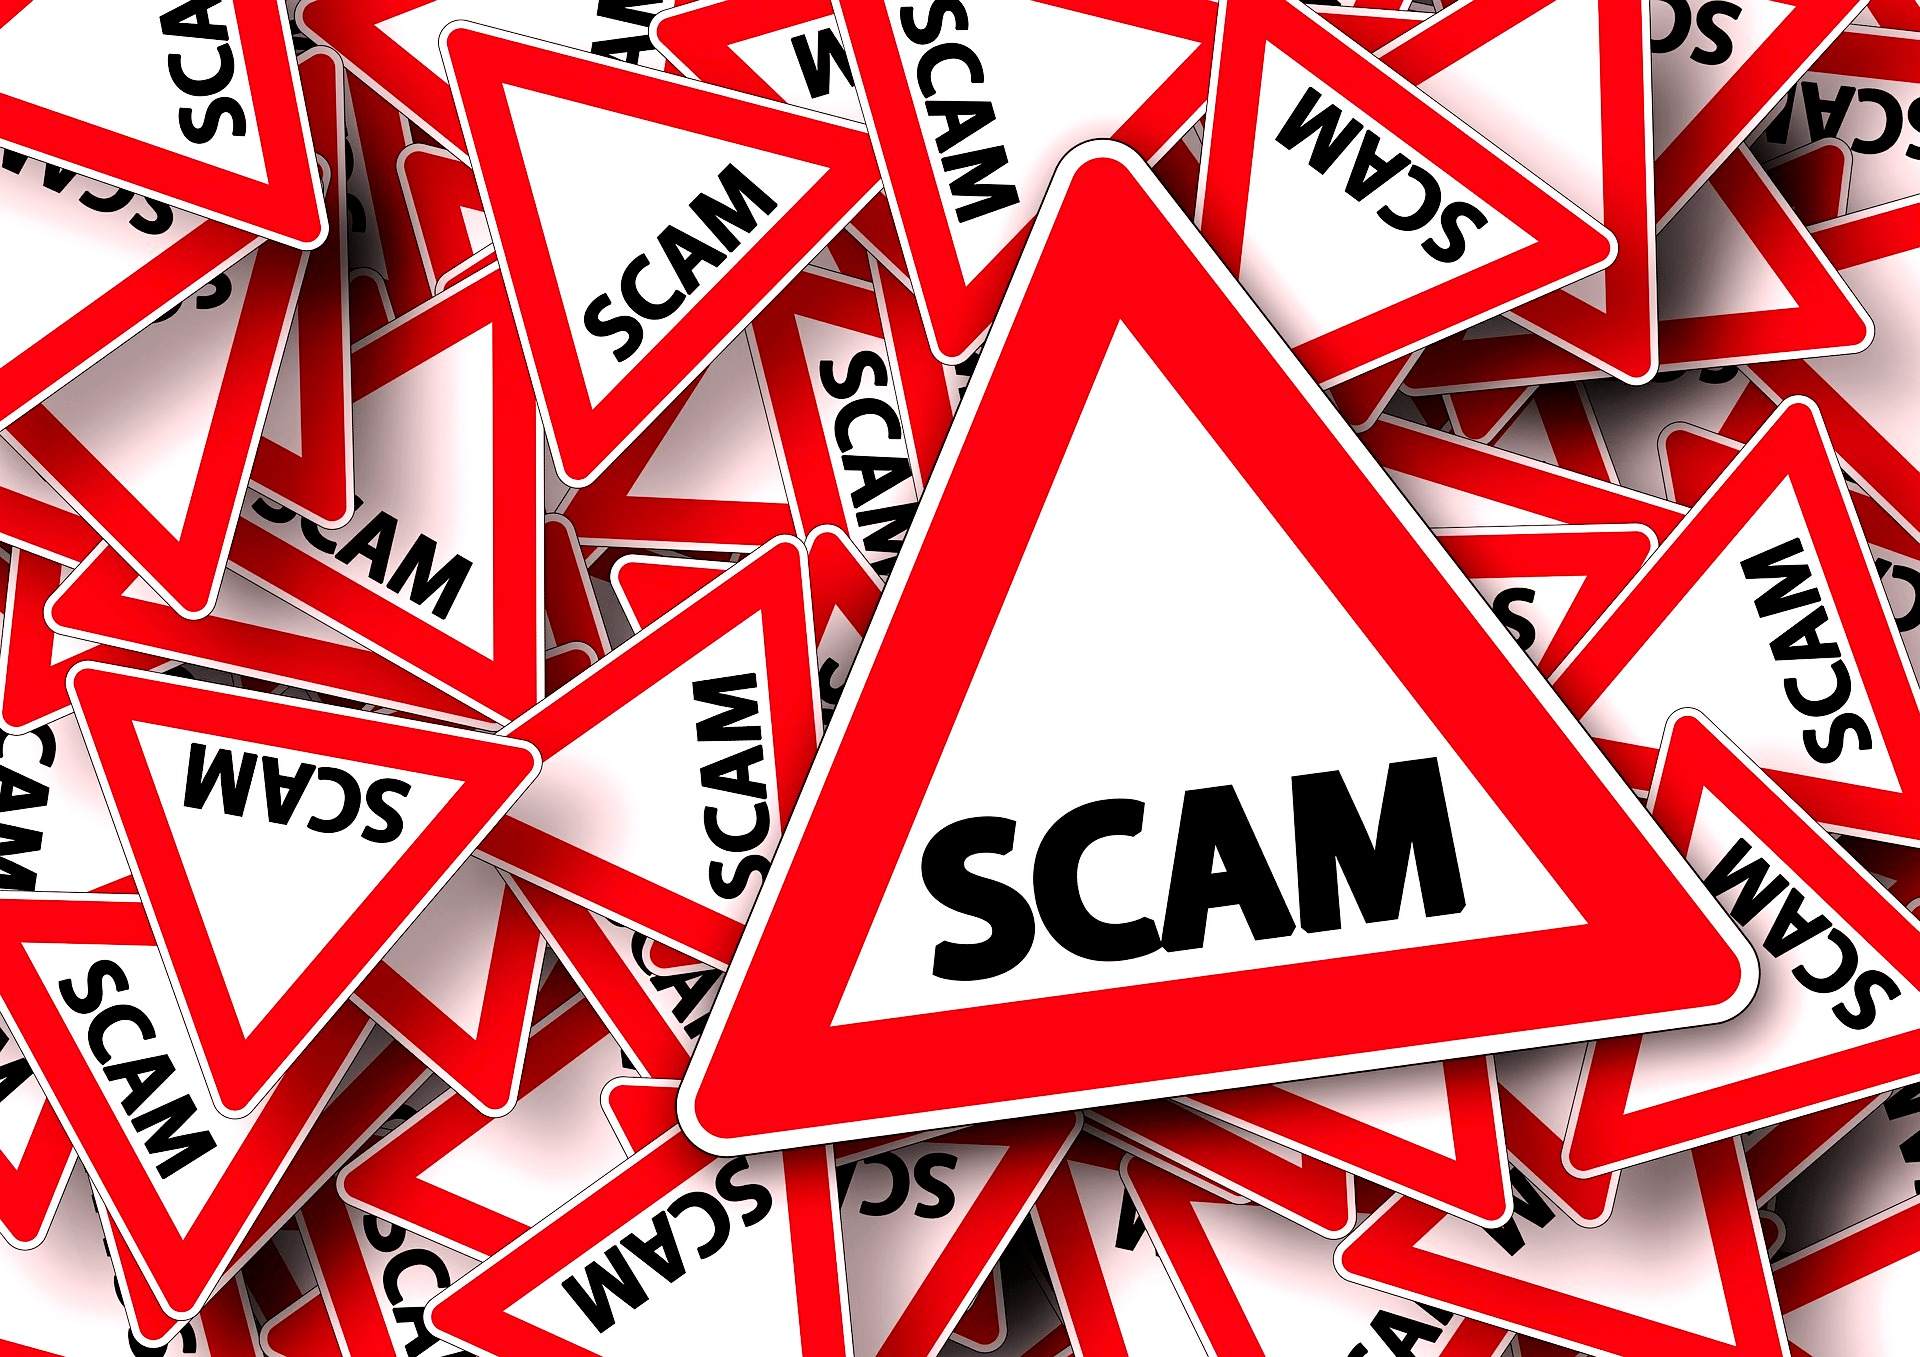 Beware! Scammers are doing this to Steal your Money Online - LTK  TECHNOLOGIES